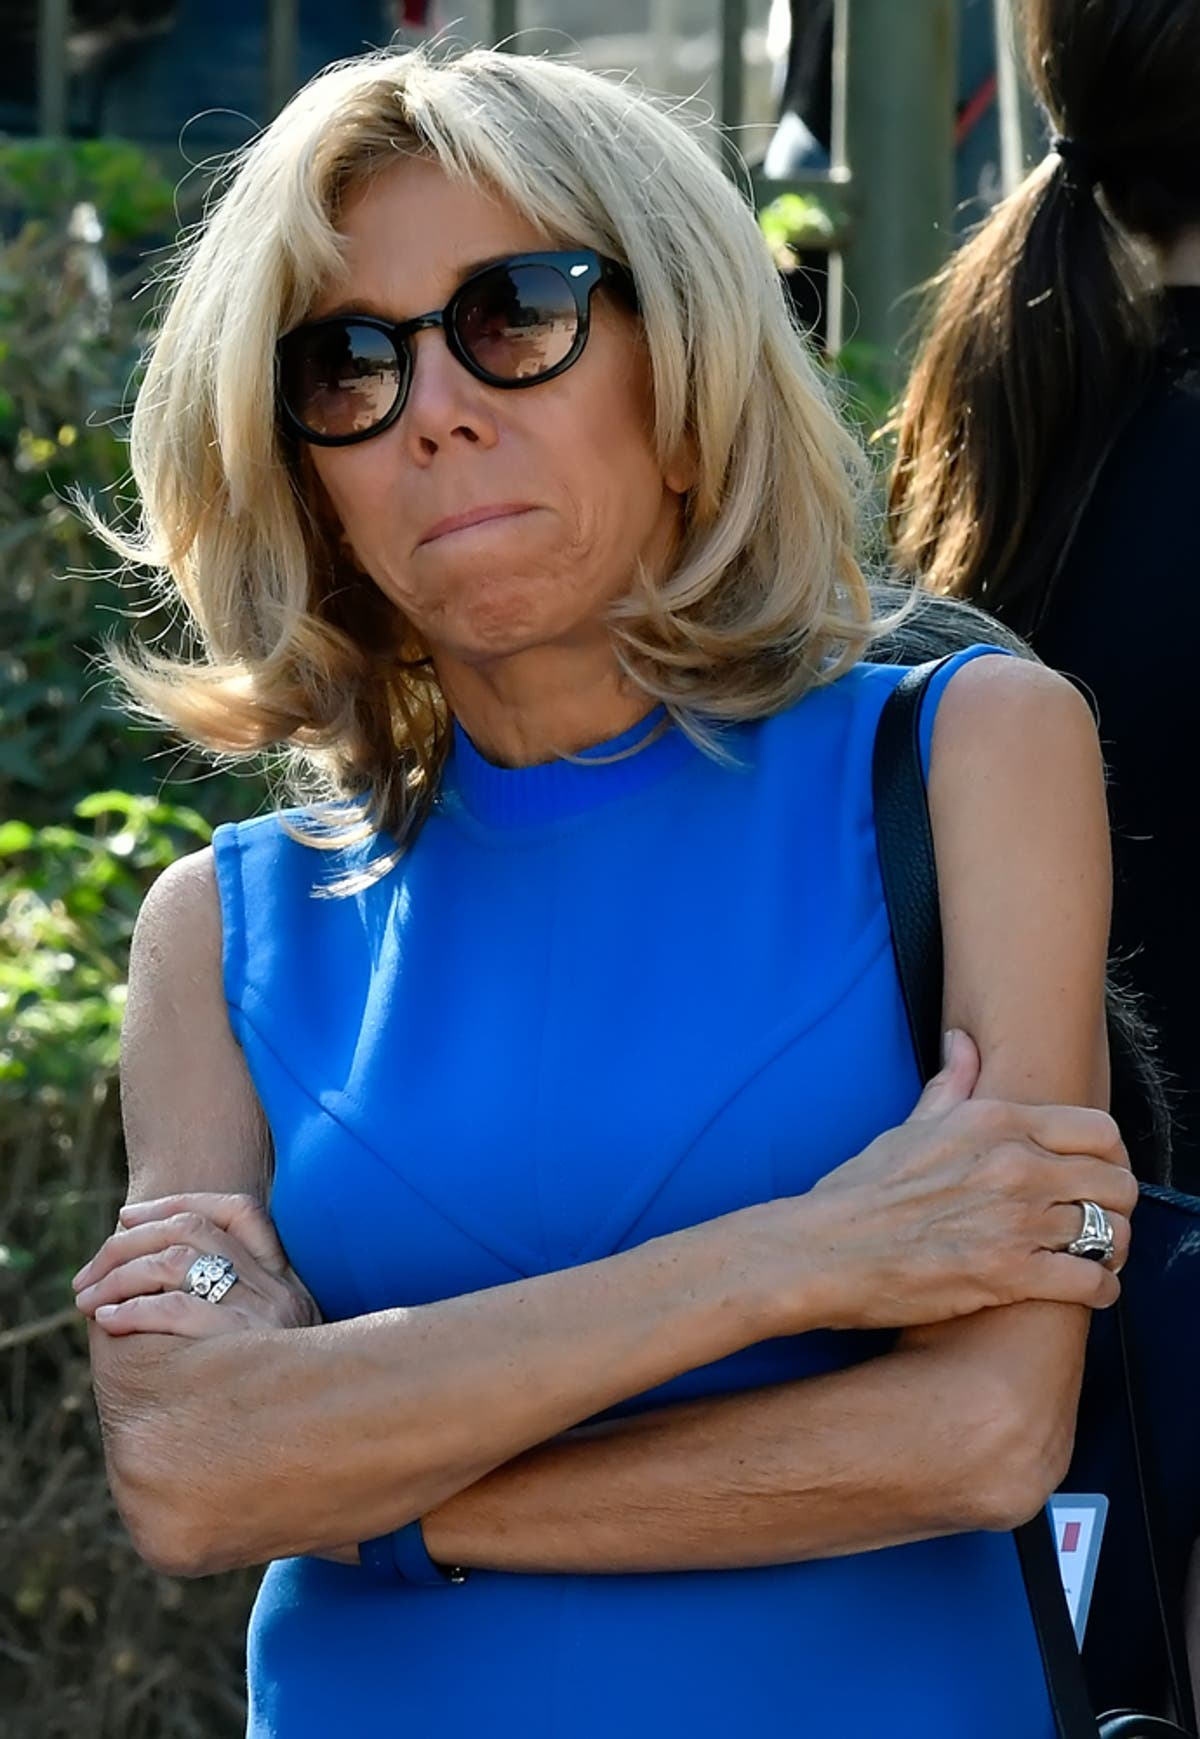 Brigitte Macron Steps Out For The First Time Since Facial Surgery Al Bawaba